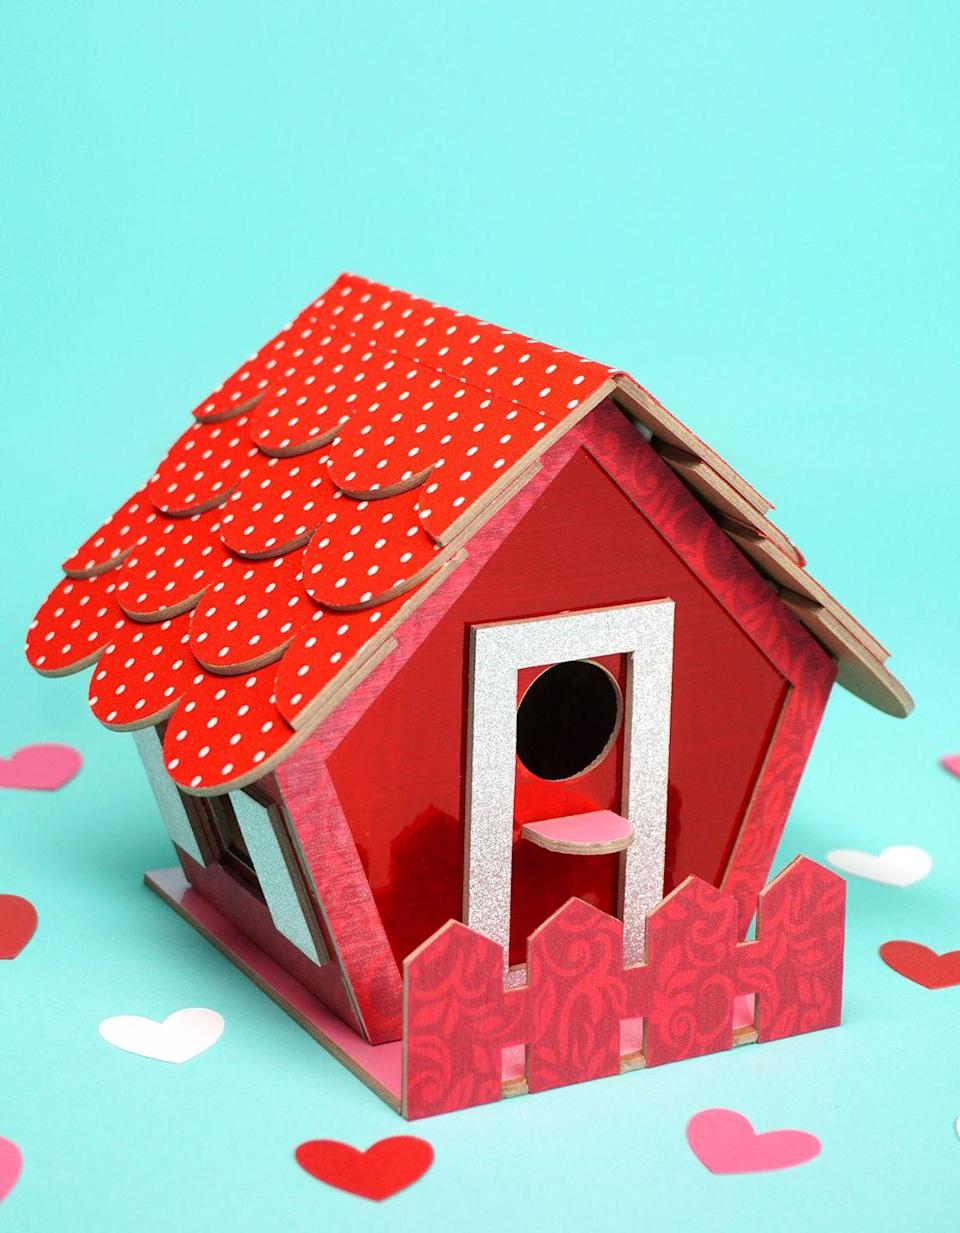 """<p>If it's welcoming enough for birds, then it's bound to have a similar effect on all the valentines. </p><p><em><a href=""""https://www.happinessishomemade.net/birdhouse-valentine-card-box/"""" rel=""""nofollow noopener"""" target=""""_blank"""" data-ylk=""""slk:Get the tutorial at Happiness is Homemade »"""" class=""""link rapid-noclick-resp"""">Get the tutorial at Happiness is Homemade »</a></em></p>"""